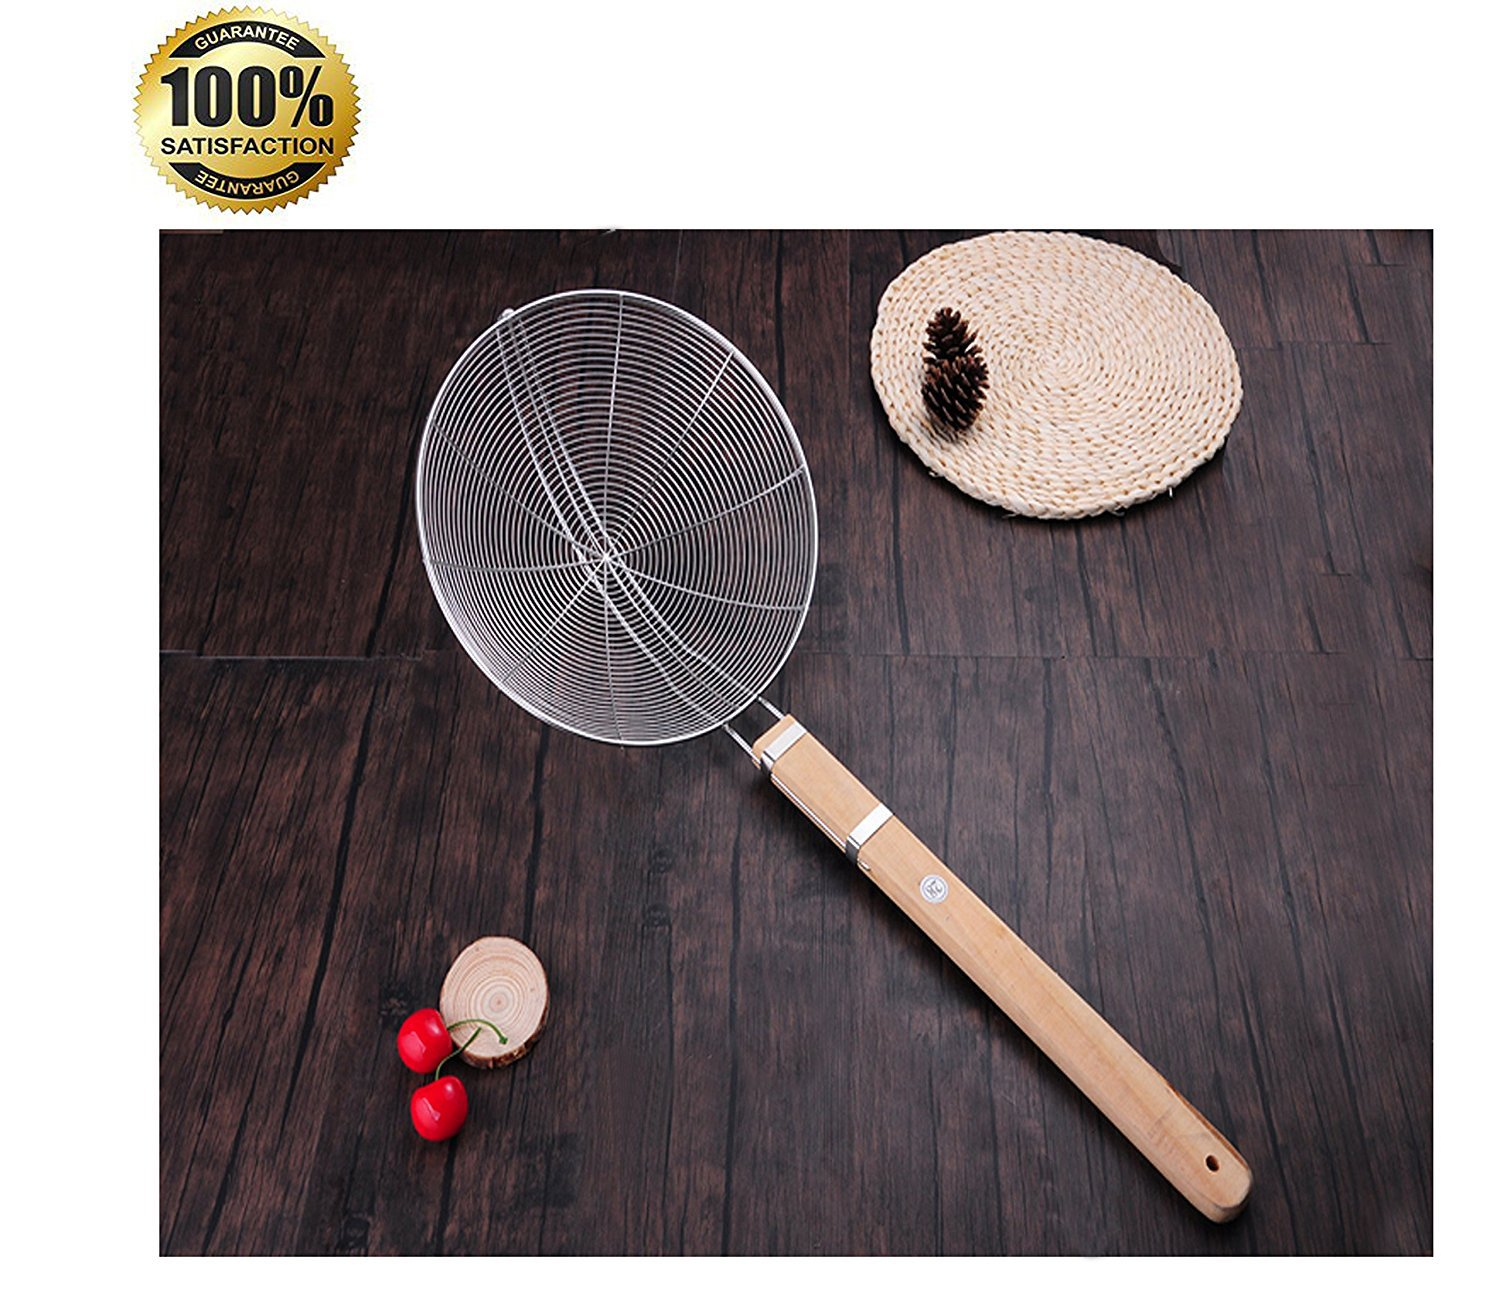 Tenta Kitchen Stainless Steel Large Wire Strainer Spider Strainer with Wooden Handle,11.6-inch basket,26.2-inch total length,big fry colander,accessories,skimmer,tool(Please Mind The Size)